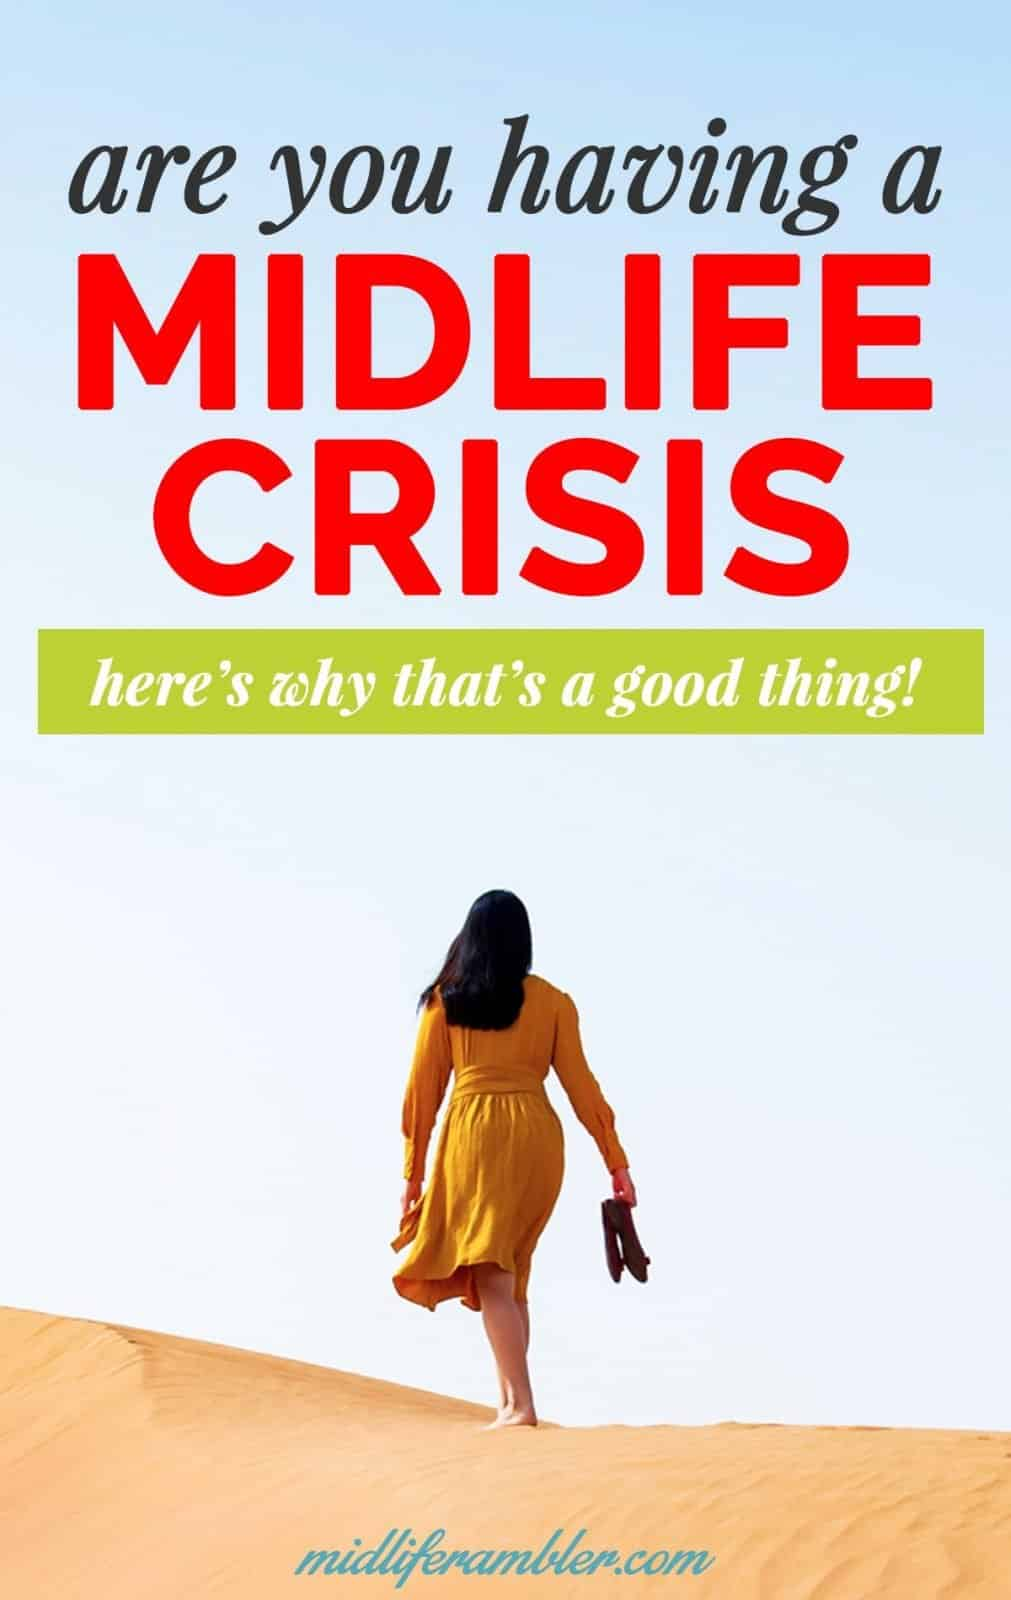 The Gift of the Midlife Crisis 2